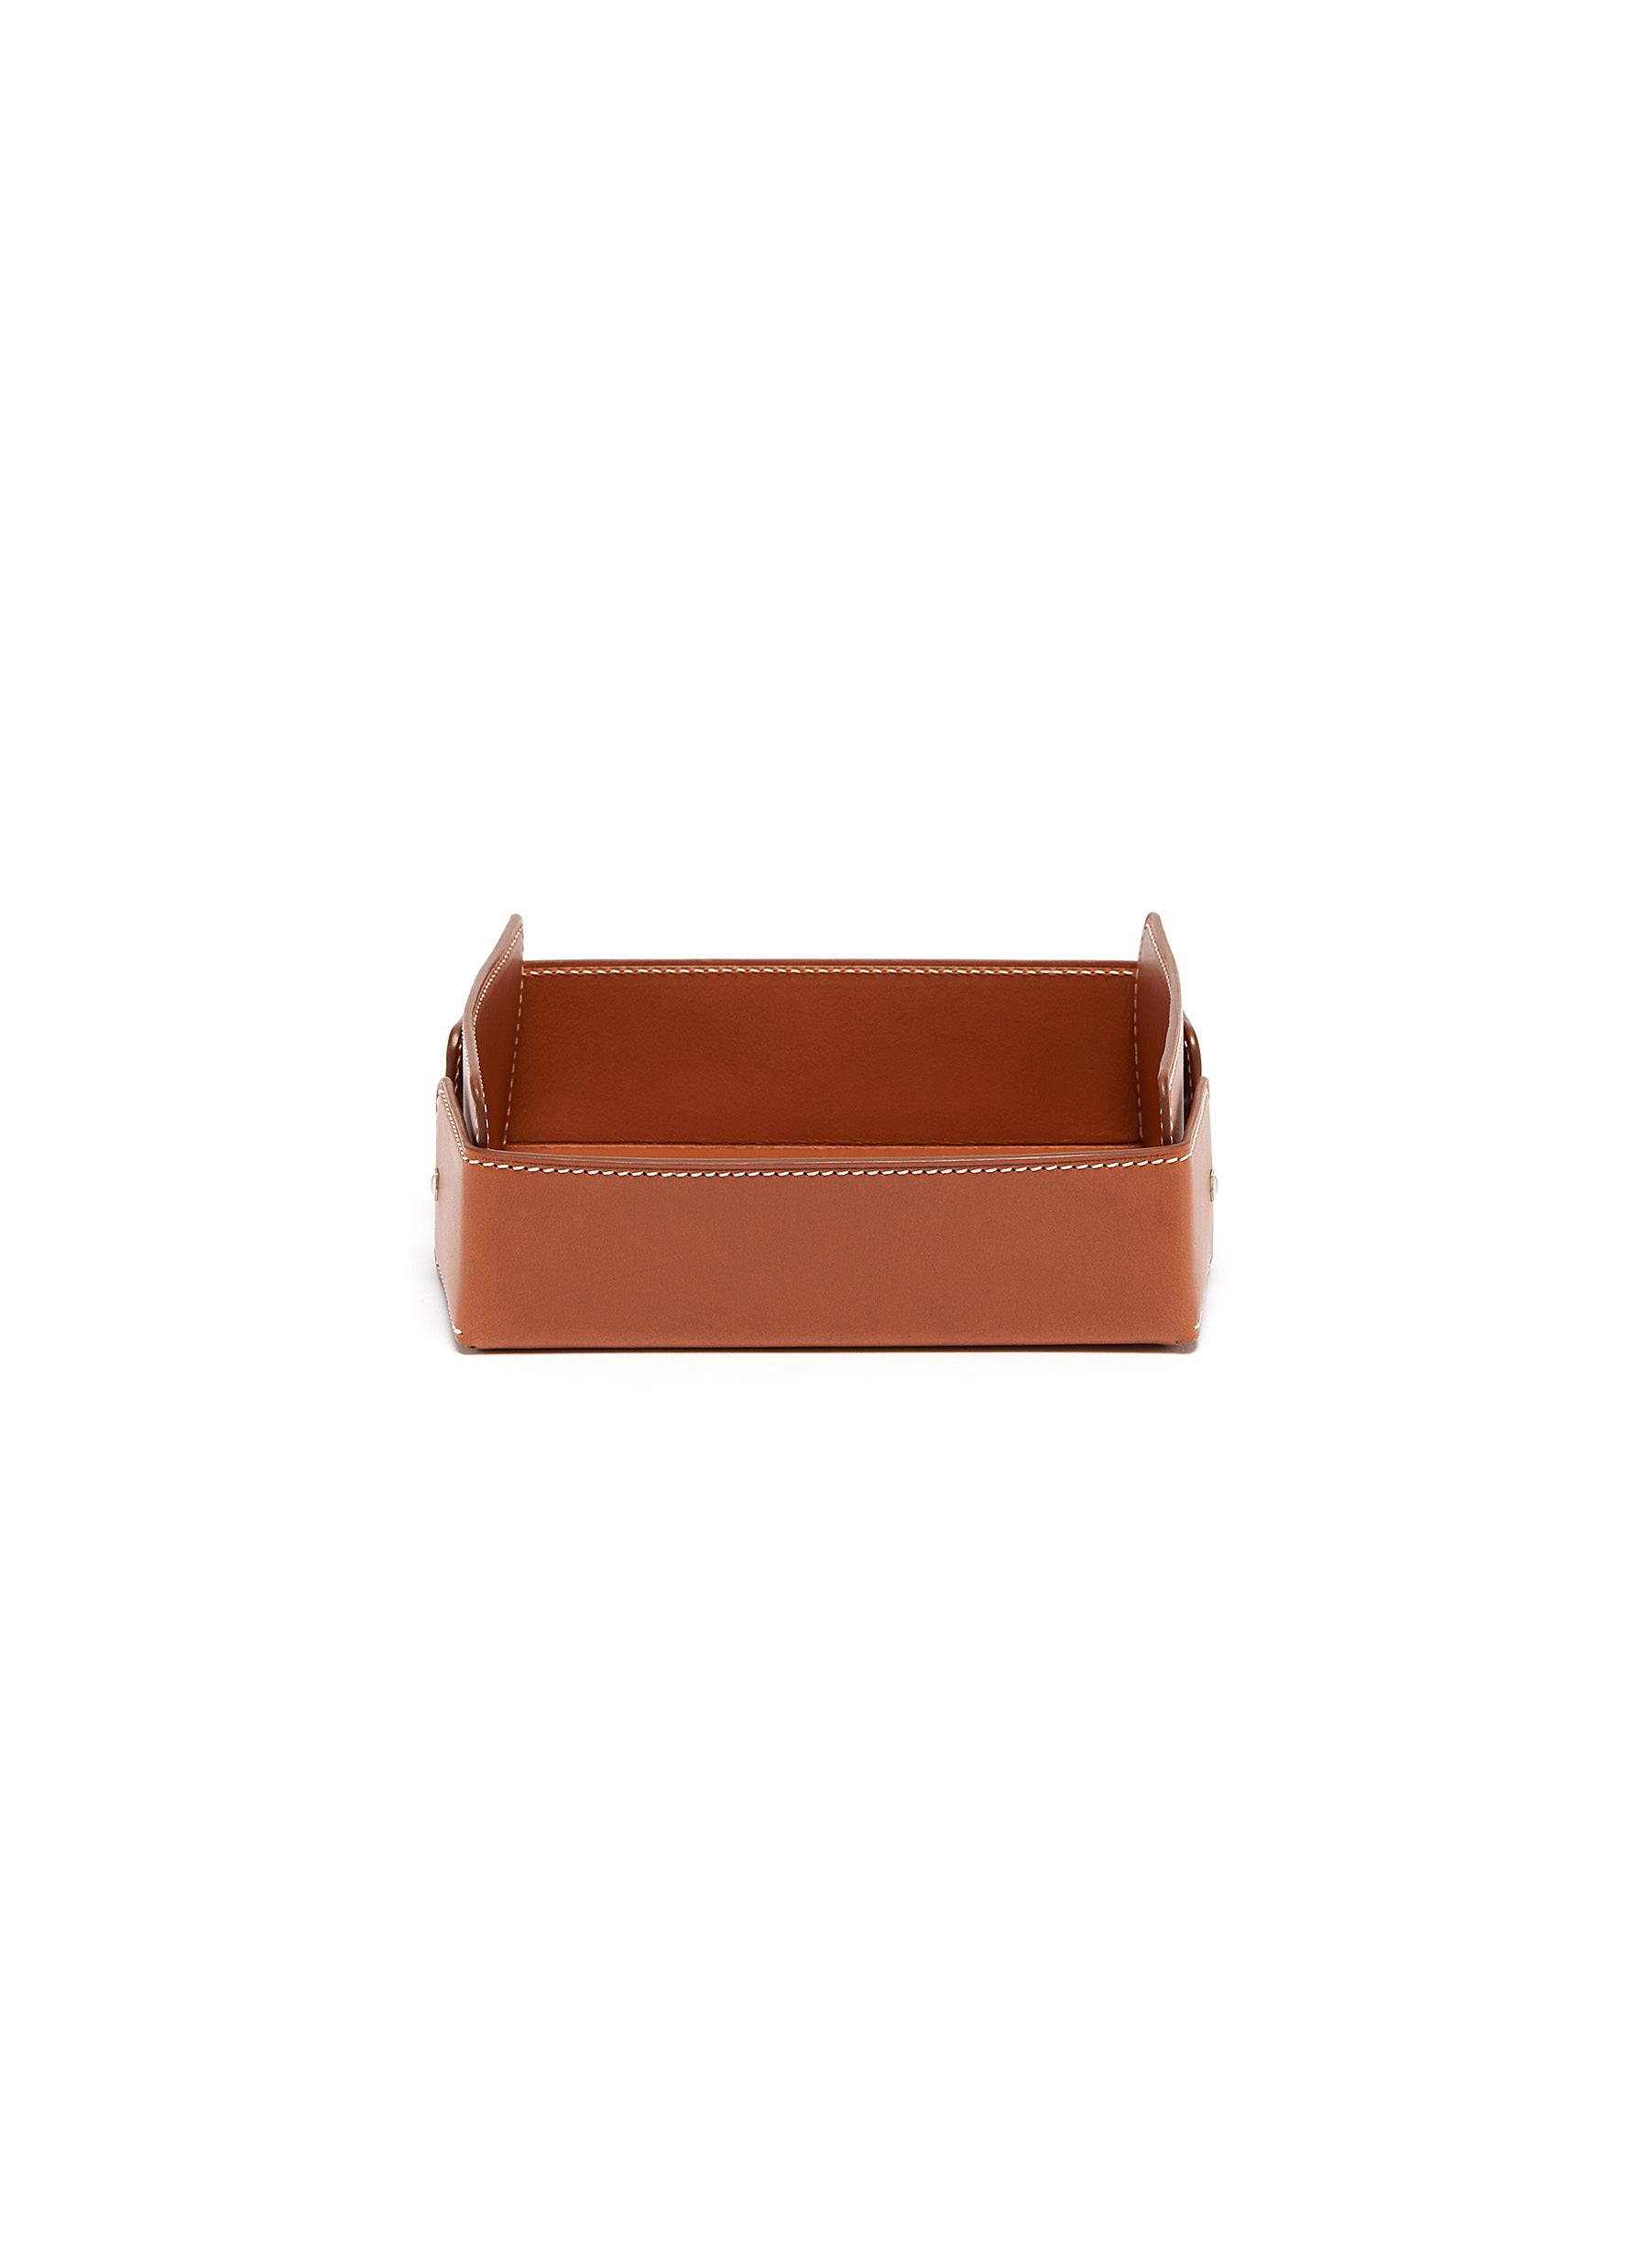 Small leather desk tray